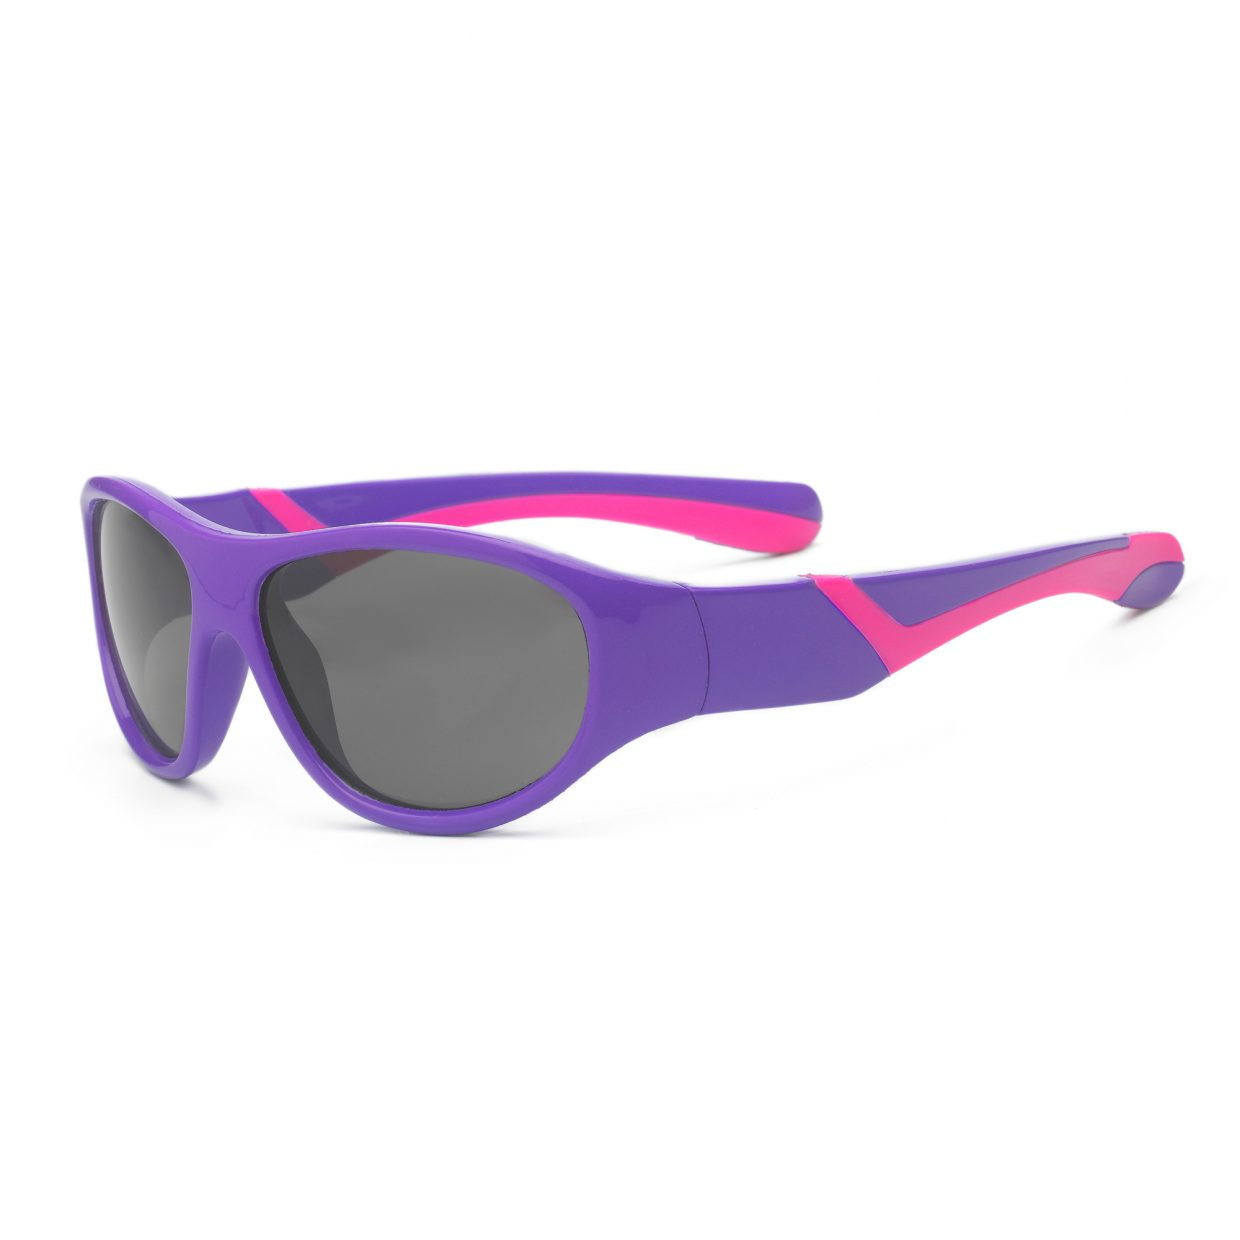 Purple and Pink Sunglasses